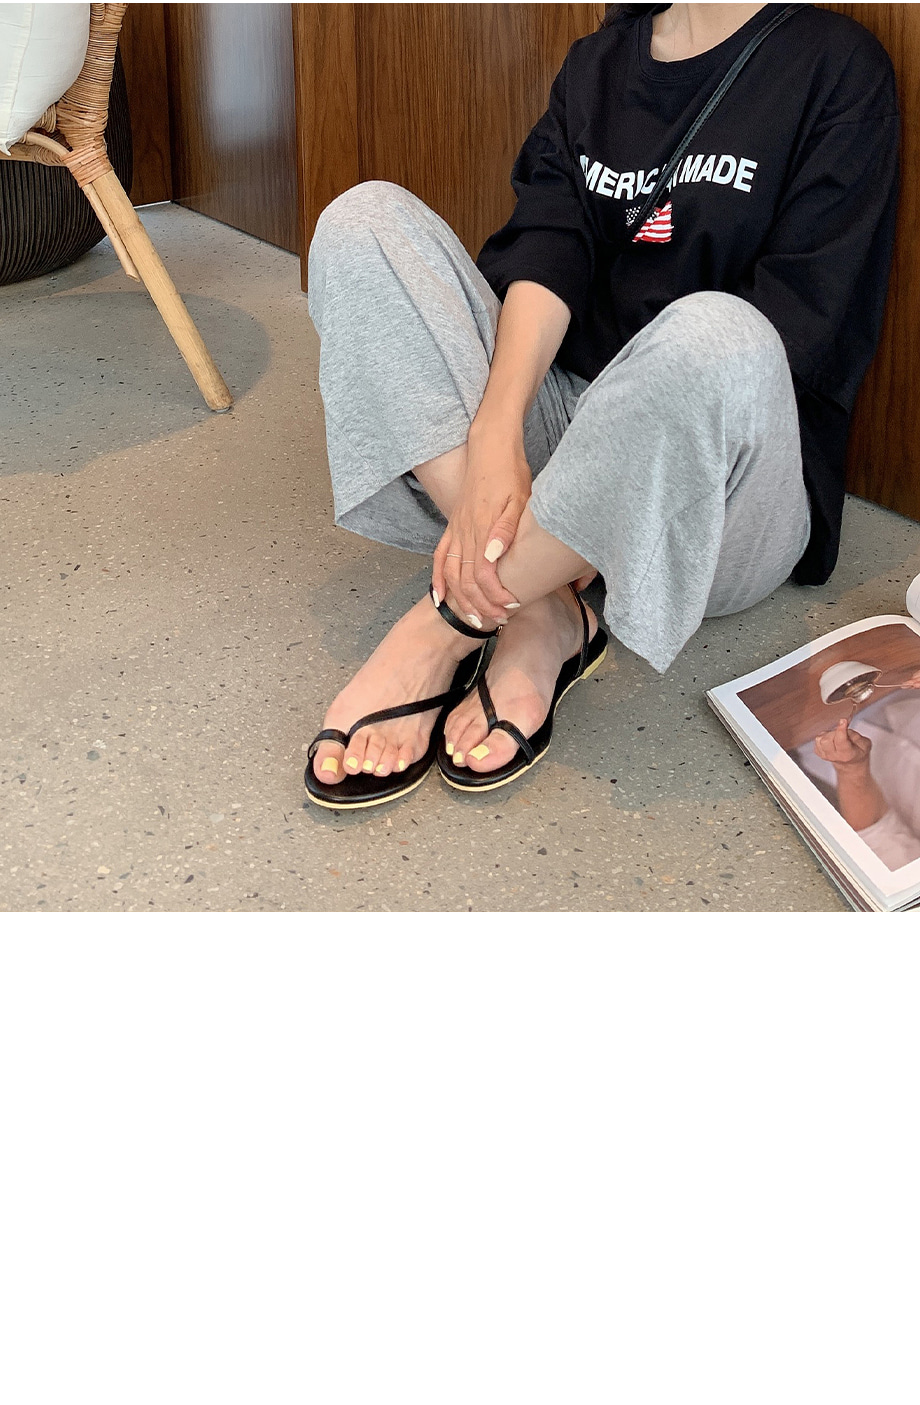 Rizzo plucked strap sandals